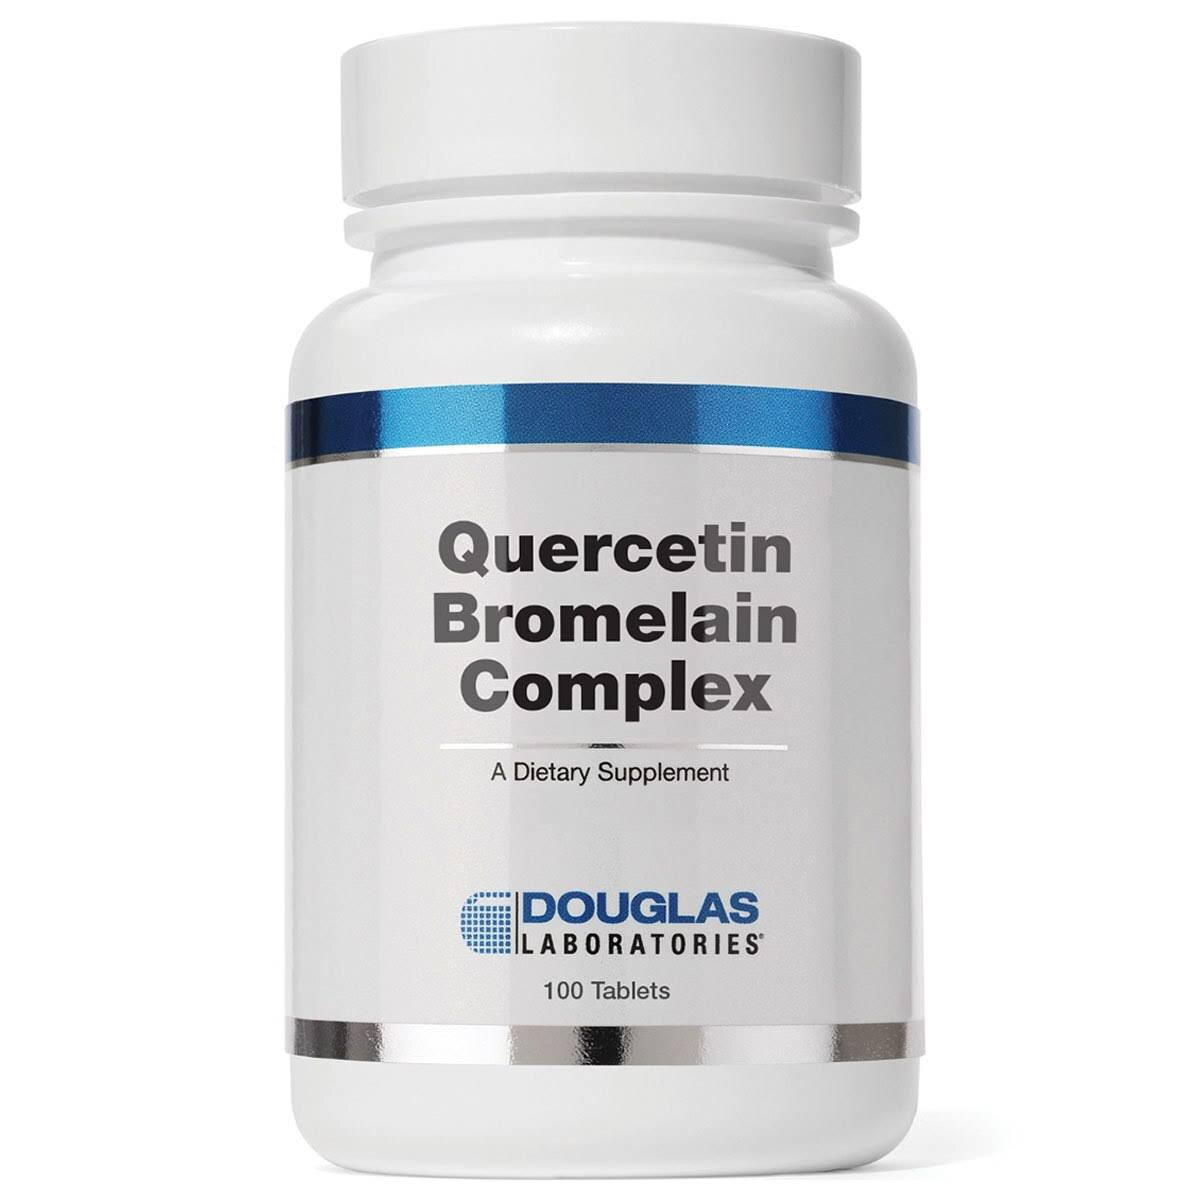 Douglas Laboratories Quercetin Bromelain Complex Supplements - 100ct